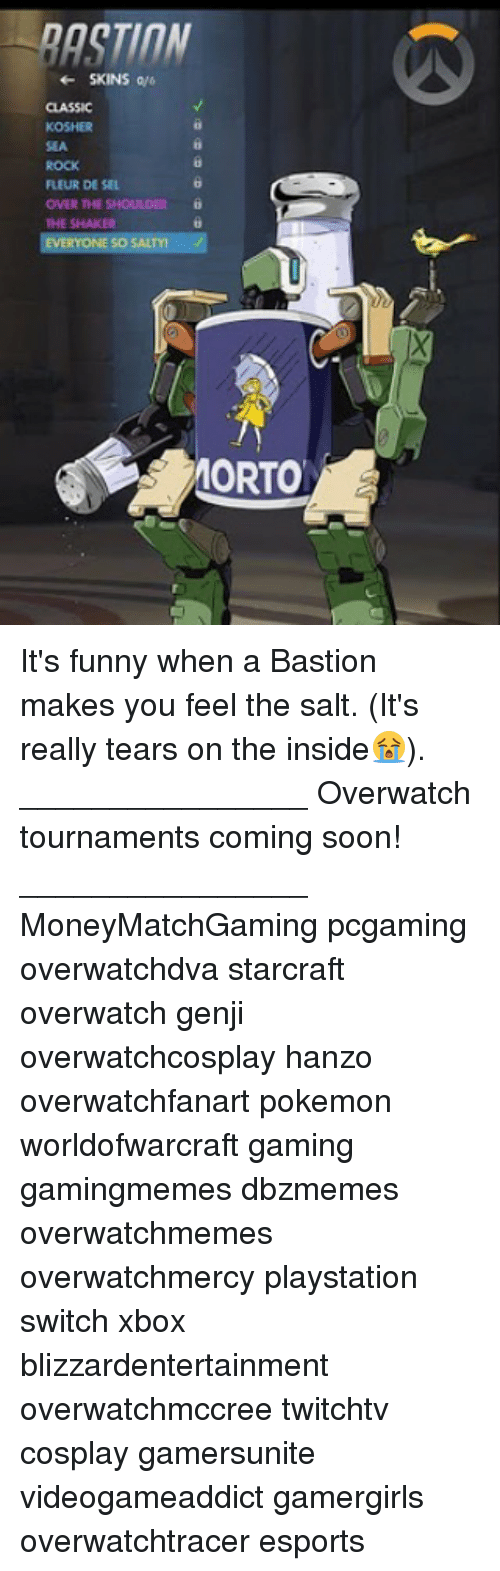 starcrafts: RASTINN  CLASSIC  KOSHER  SEA  ROCK  FLEUR DE SEL  OVER THE SHOULDER  THE SHAKER  0  EVERYONE SO SALTY  ORTO It's funny when a Bastion makes you feel the salt. (It's really tears on the inside😭). ________________ Overwatch tournaments coming soon! ________________ MoneyMatchGaming pcgaming overwatchdva starcraft overwatch genji overwatchcosplay hanzo overwatchfanart pokemon worldofwarcraft gaming gamingmemes dbzmemes overwatchmemes overwatchmercy playstation switch xbox blizzardentertainment overwatchmccree twitchtv cosplay gamersunite videogameaddict gamergirls overwatchtracer esports